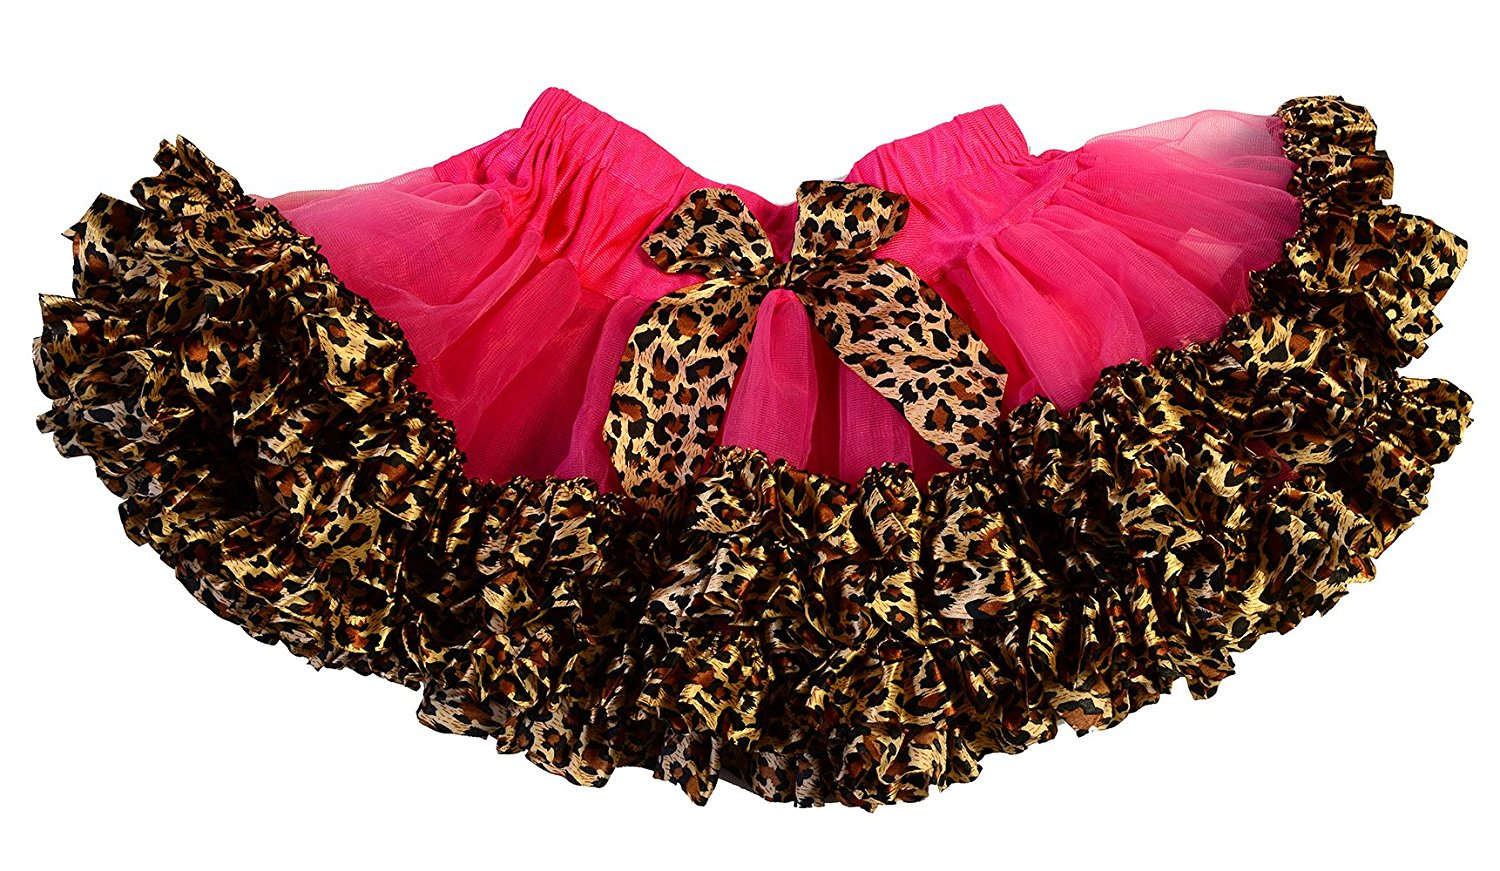 5be03821b Get Quotations · Maxine by Max Daniel Designs Girls' Fluffy Tulle Tutu  Skirt Tiered Animal Print Ballet Dance